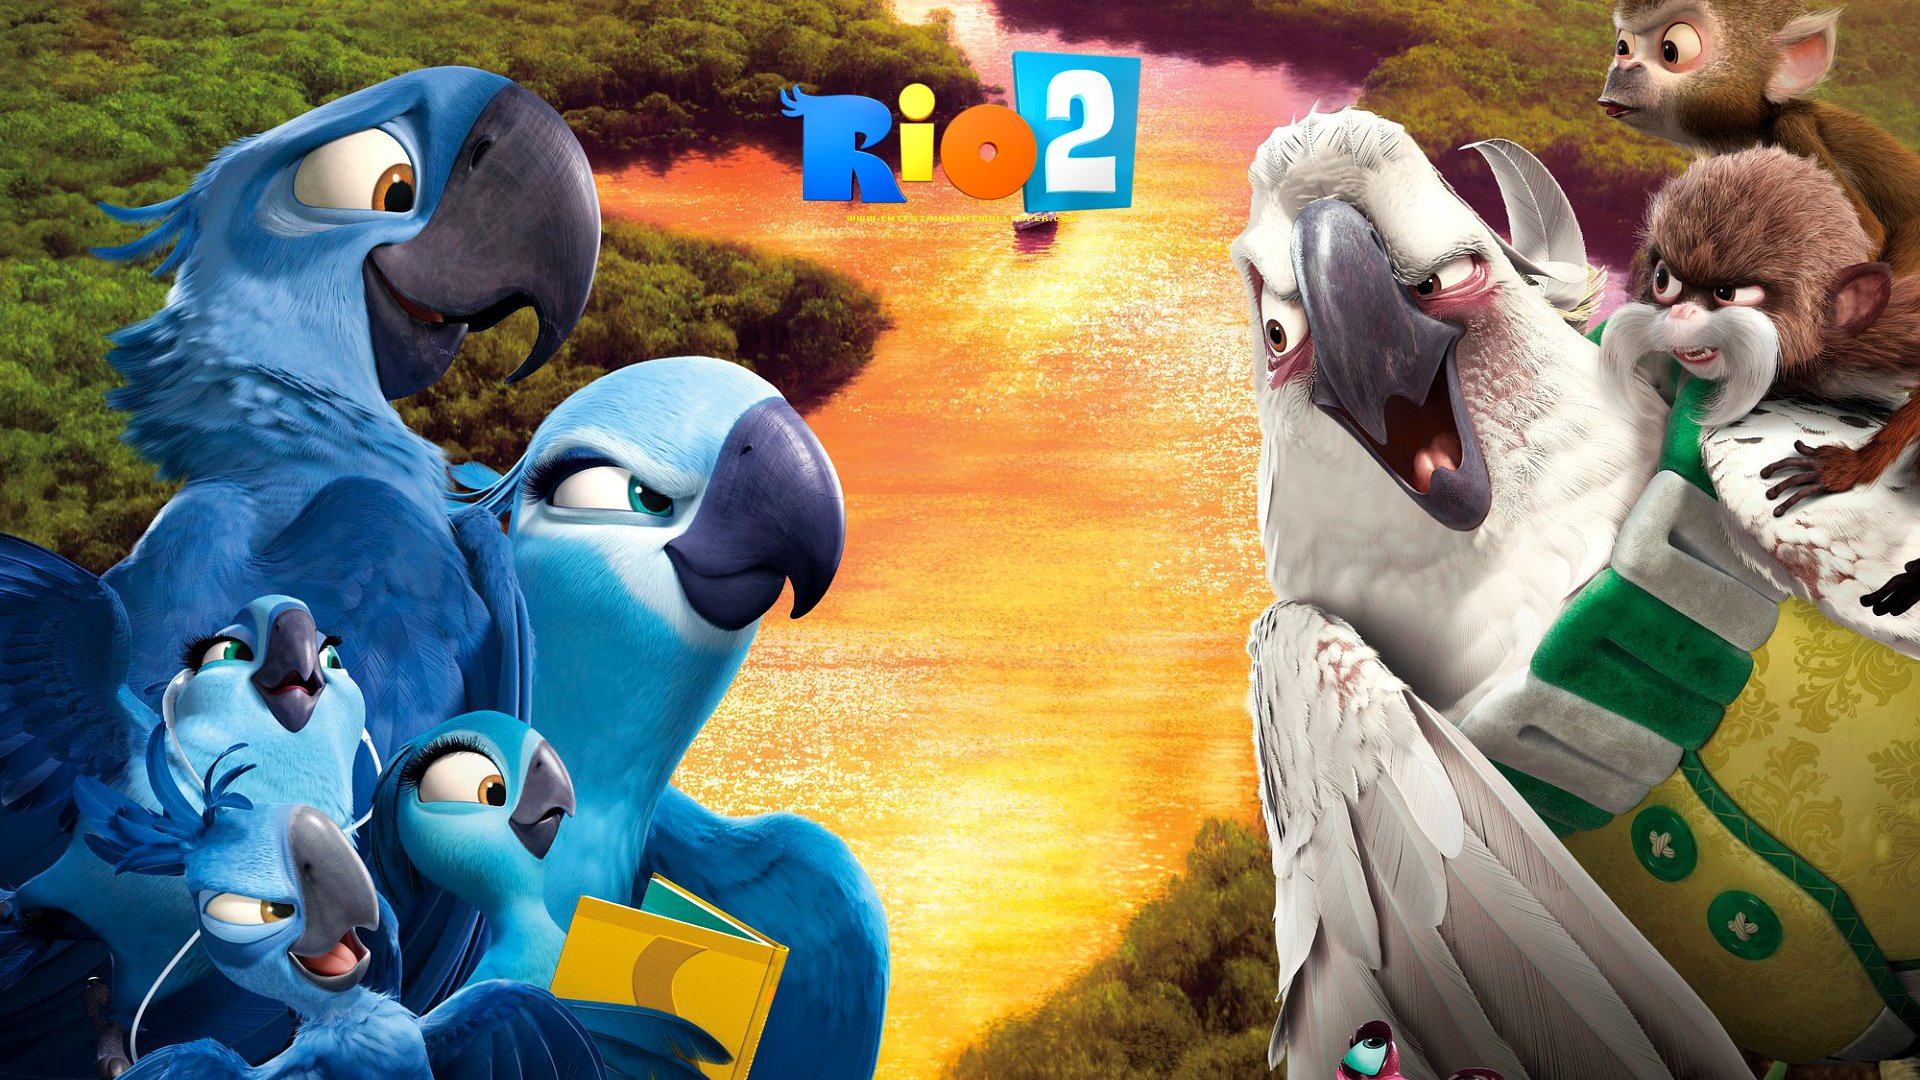 Rio 2 Wallpaper - Original size, download now.